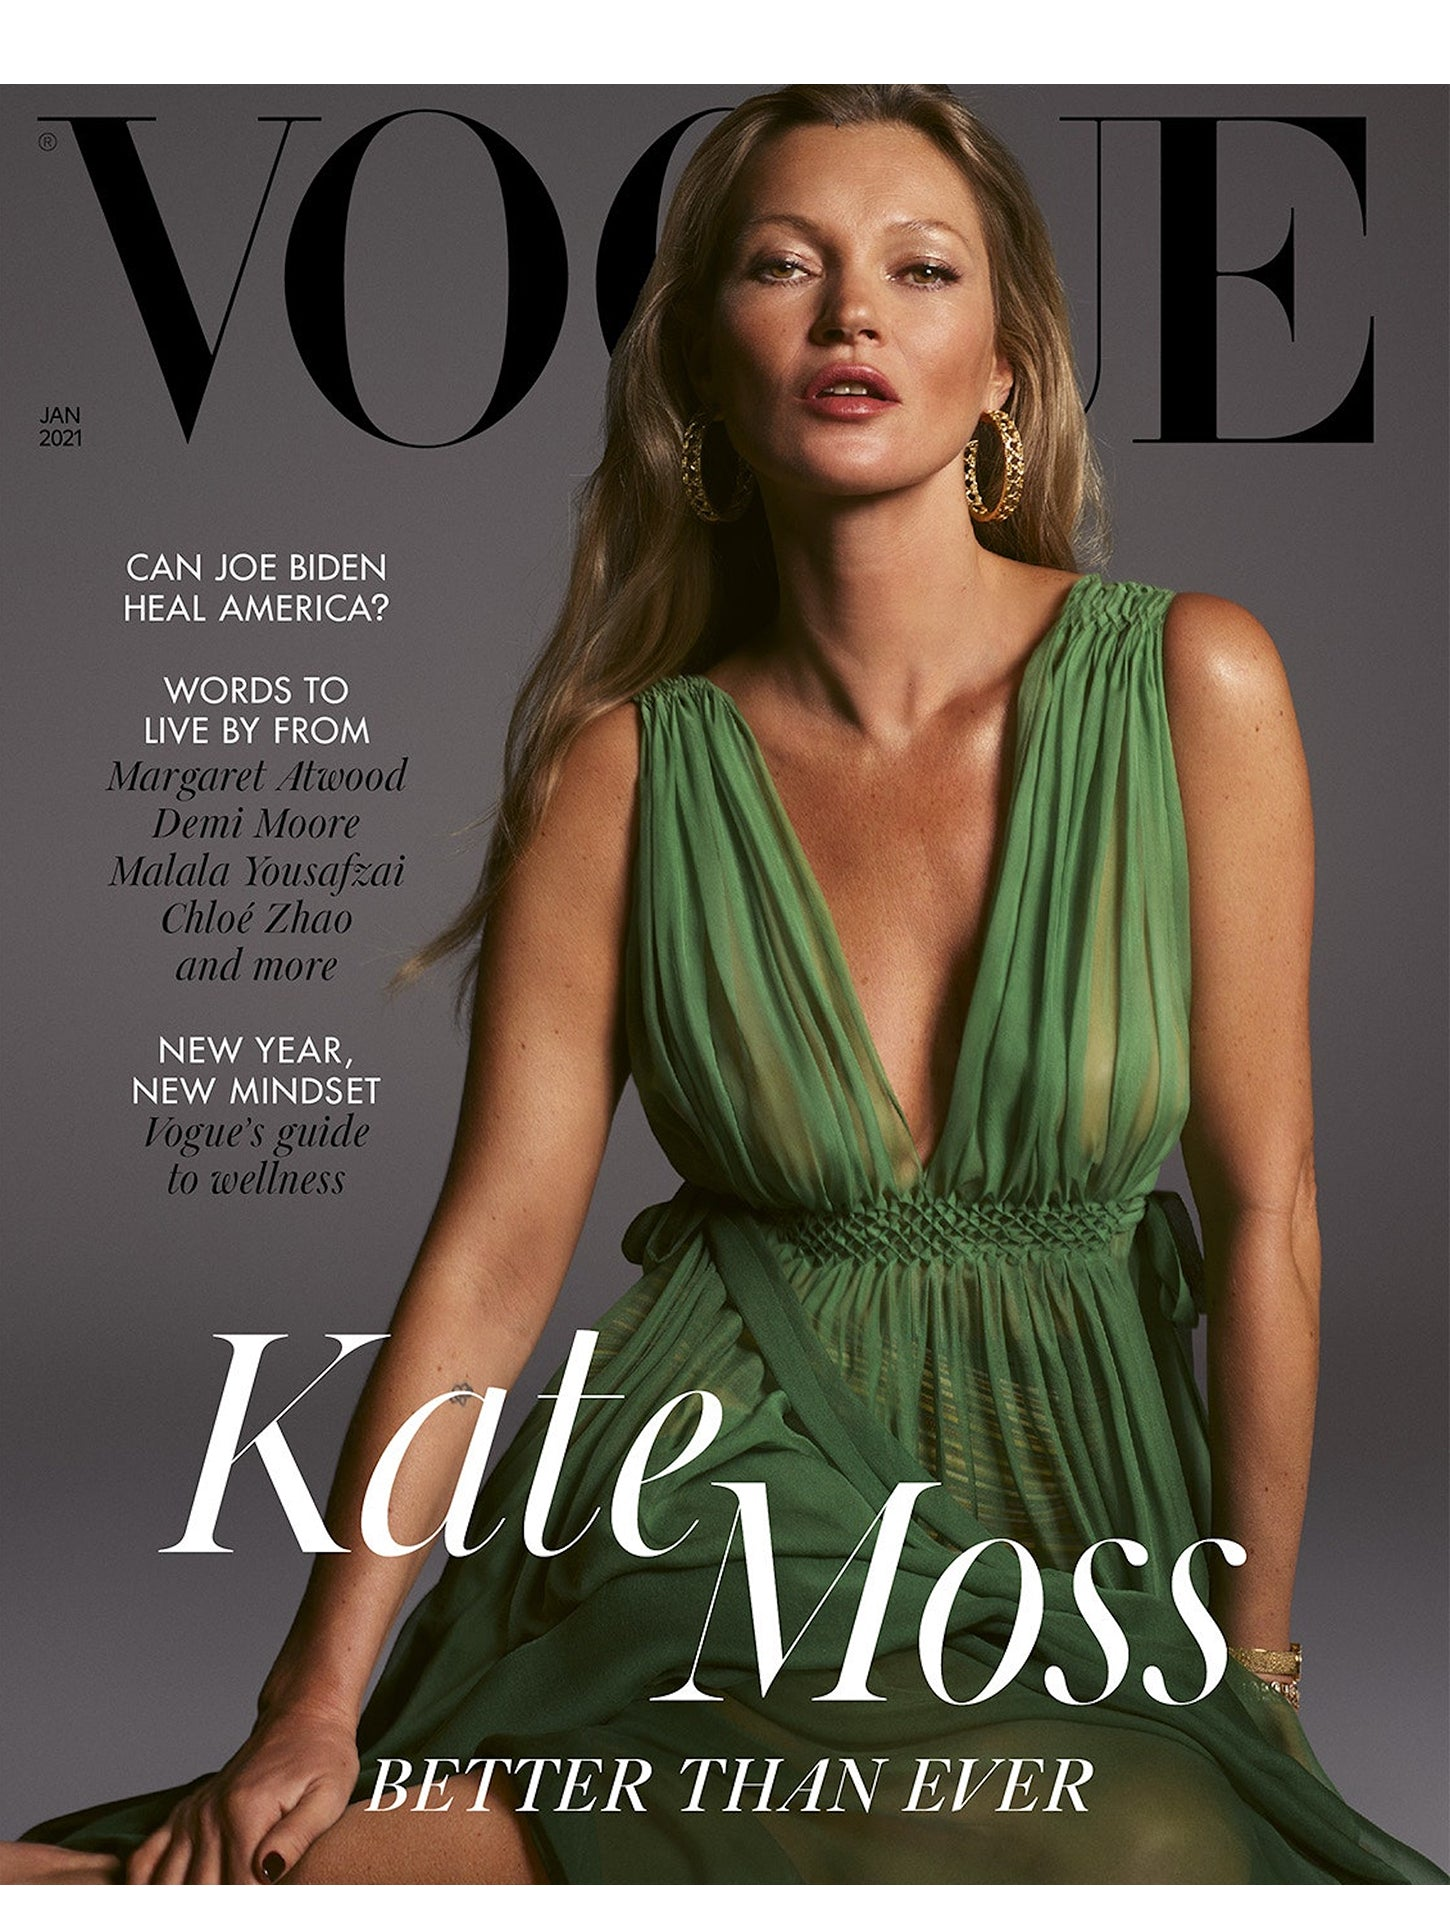 British VOGUE cover - January 2021 Edition - Rosenstaub